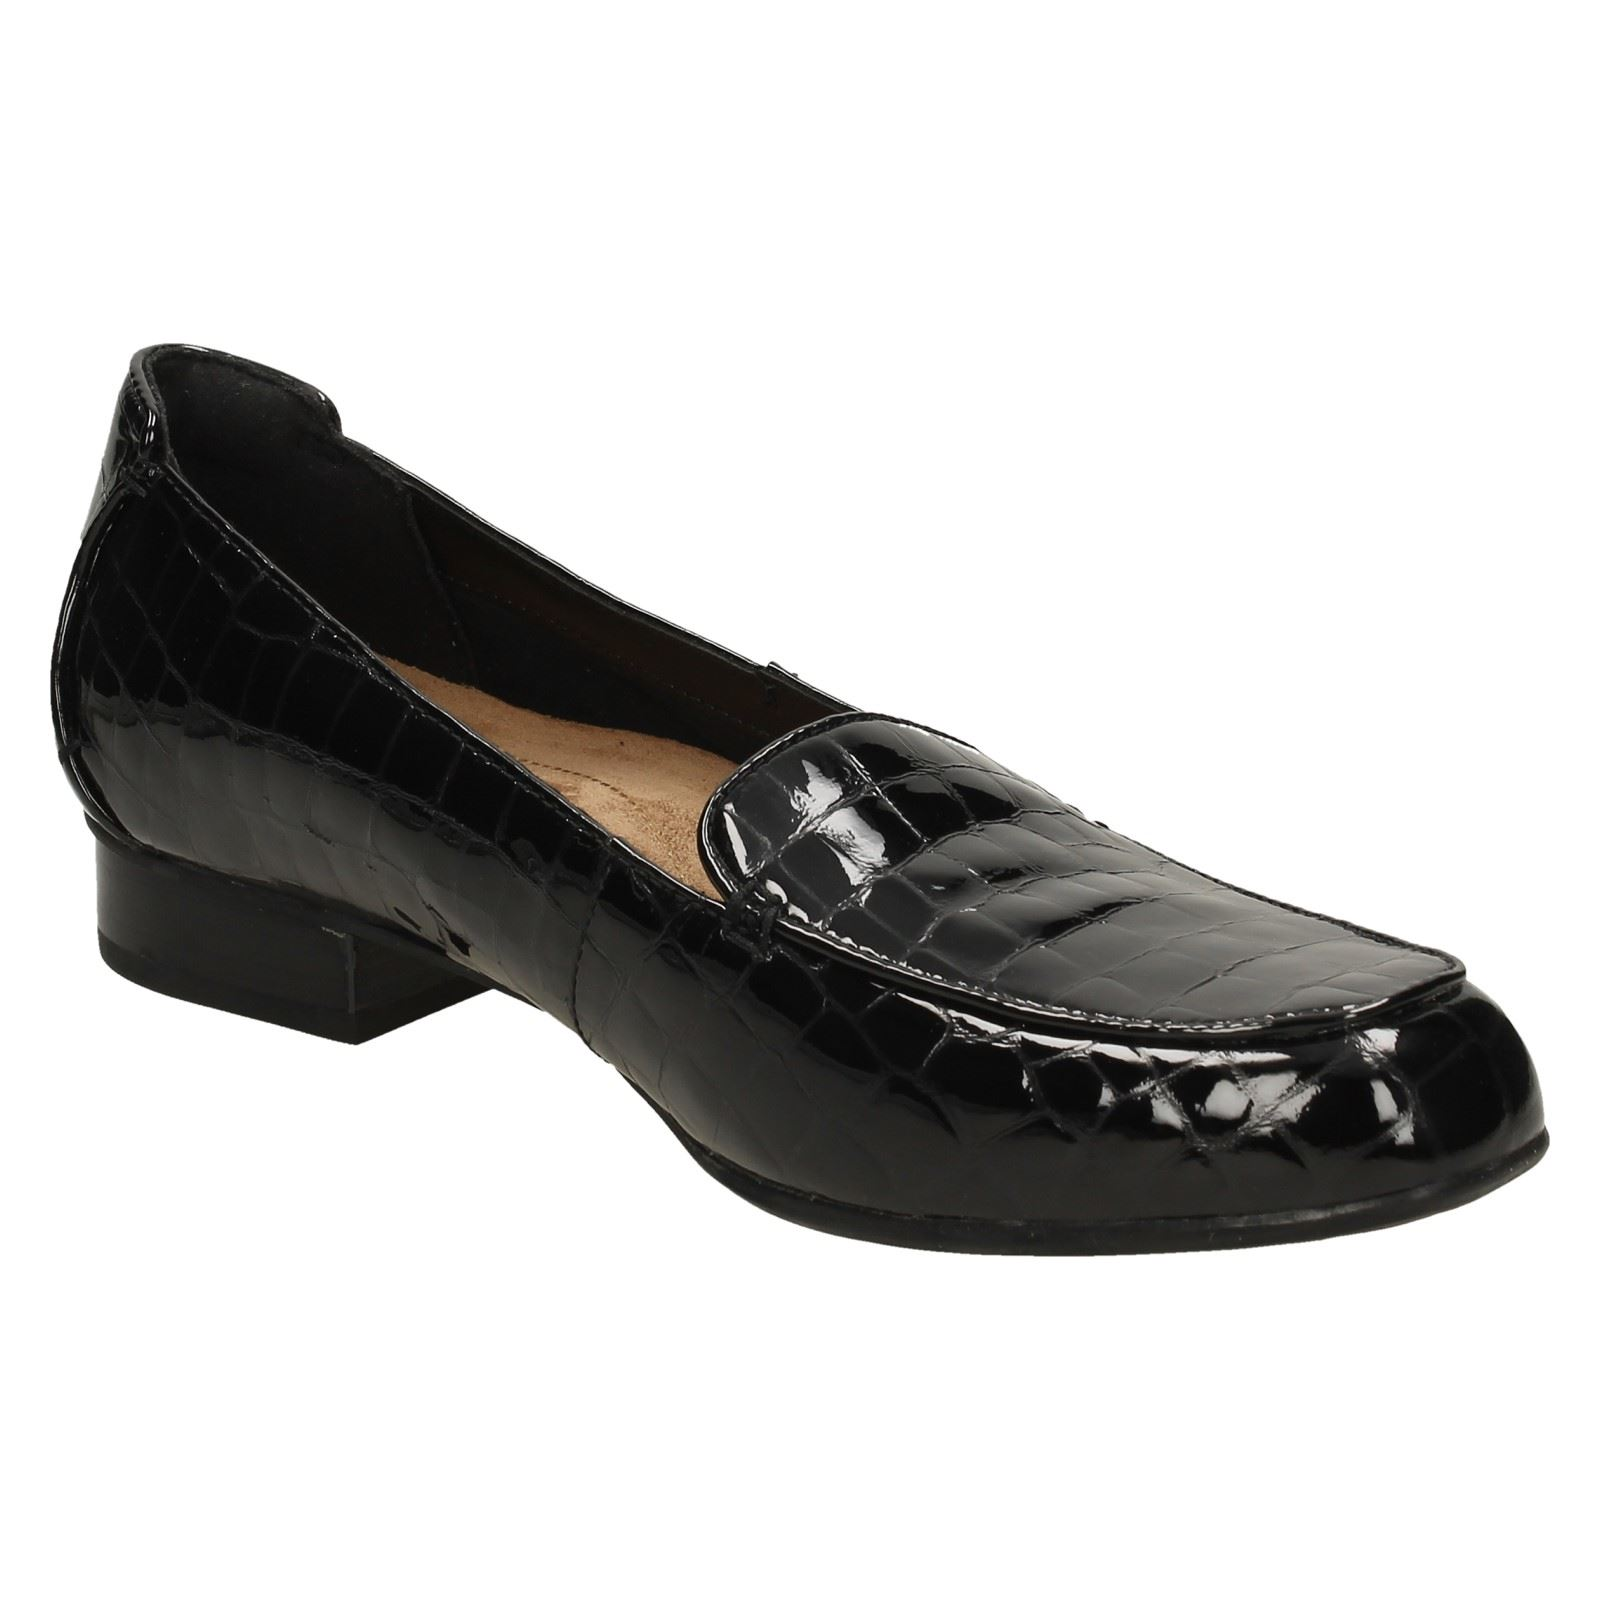 Ladies Clarks Flats /'Keesha Luca/' Leather Shoes